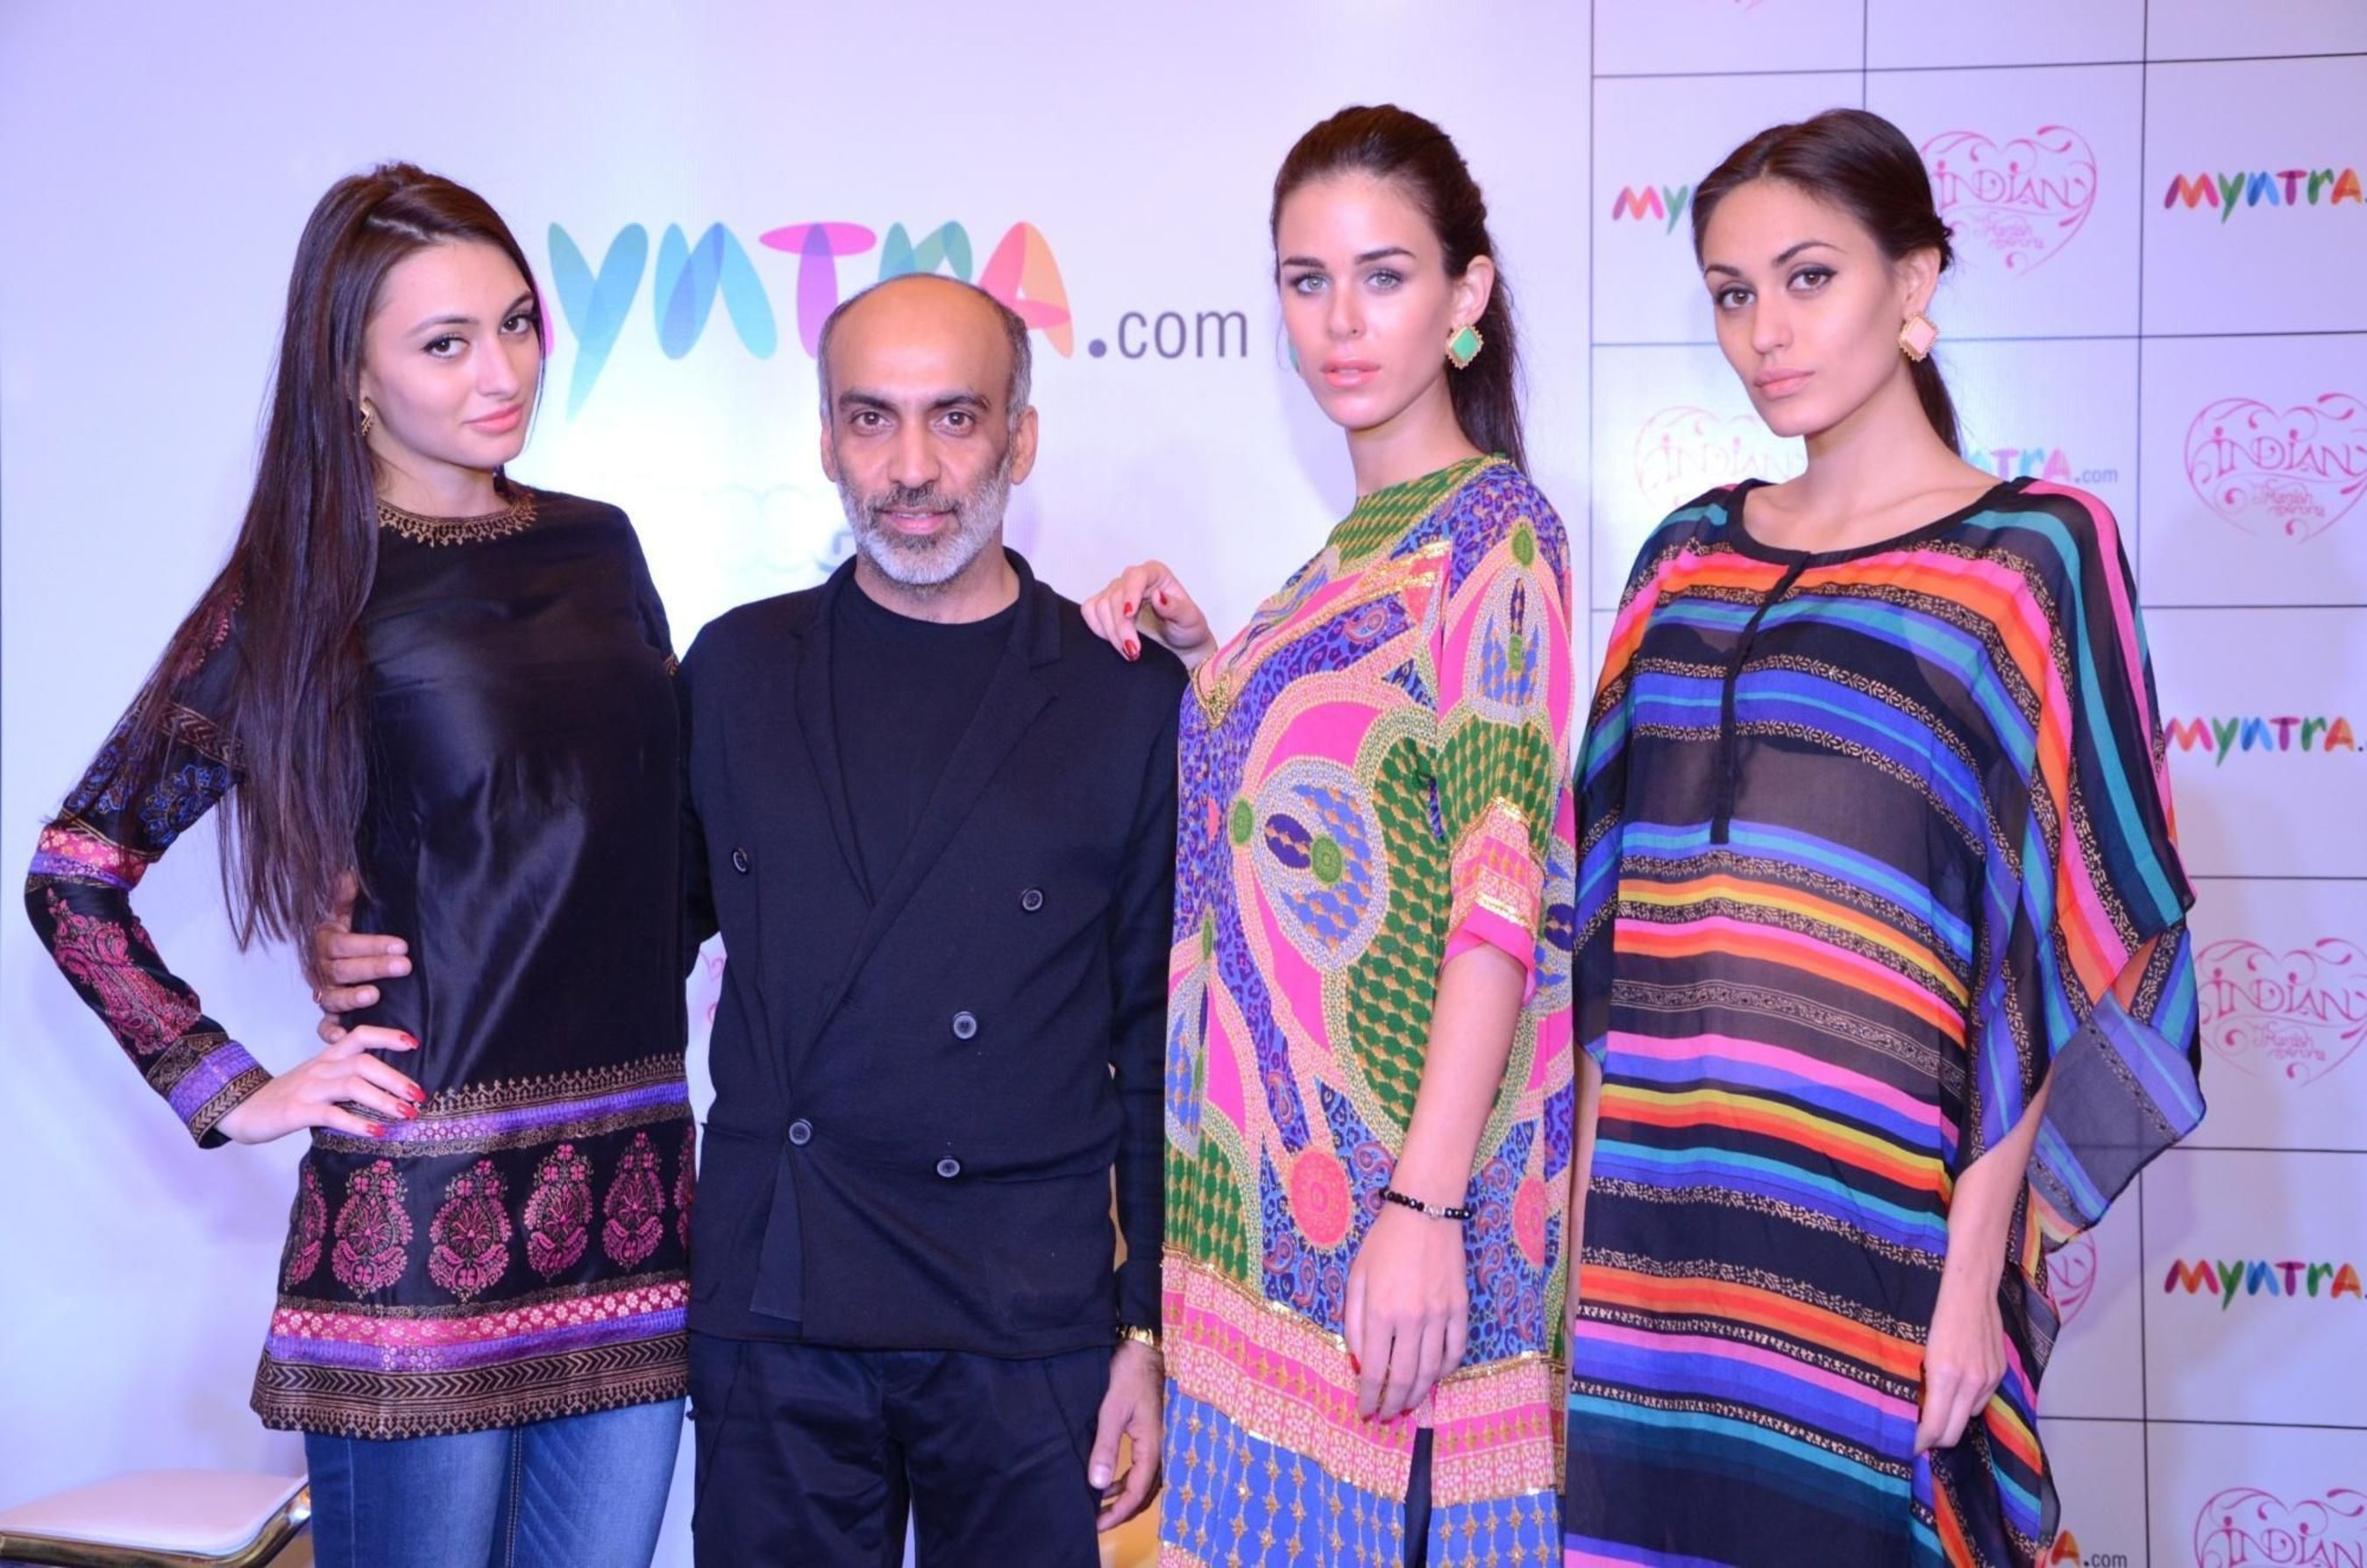 Indian by Manish Arora now available exclusively online on Myntra.com (PRNewsFoto/Myntra.com)